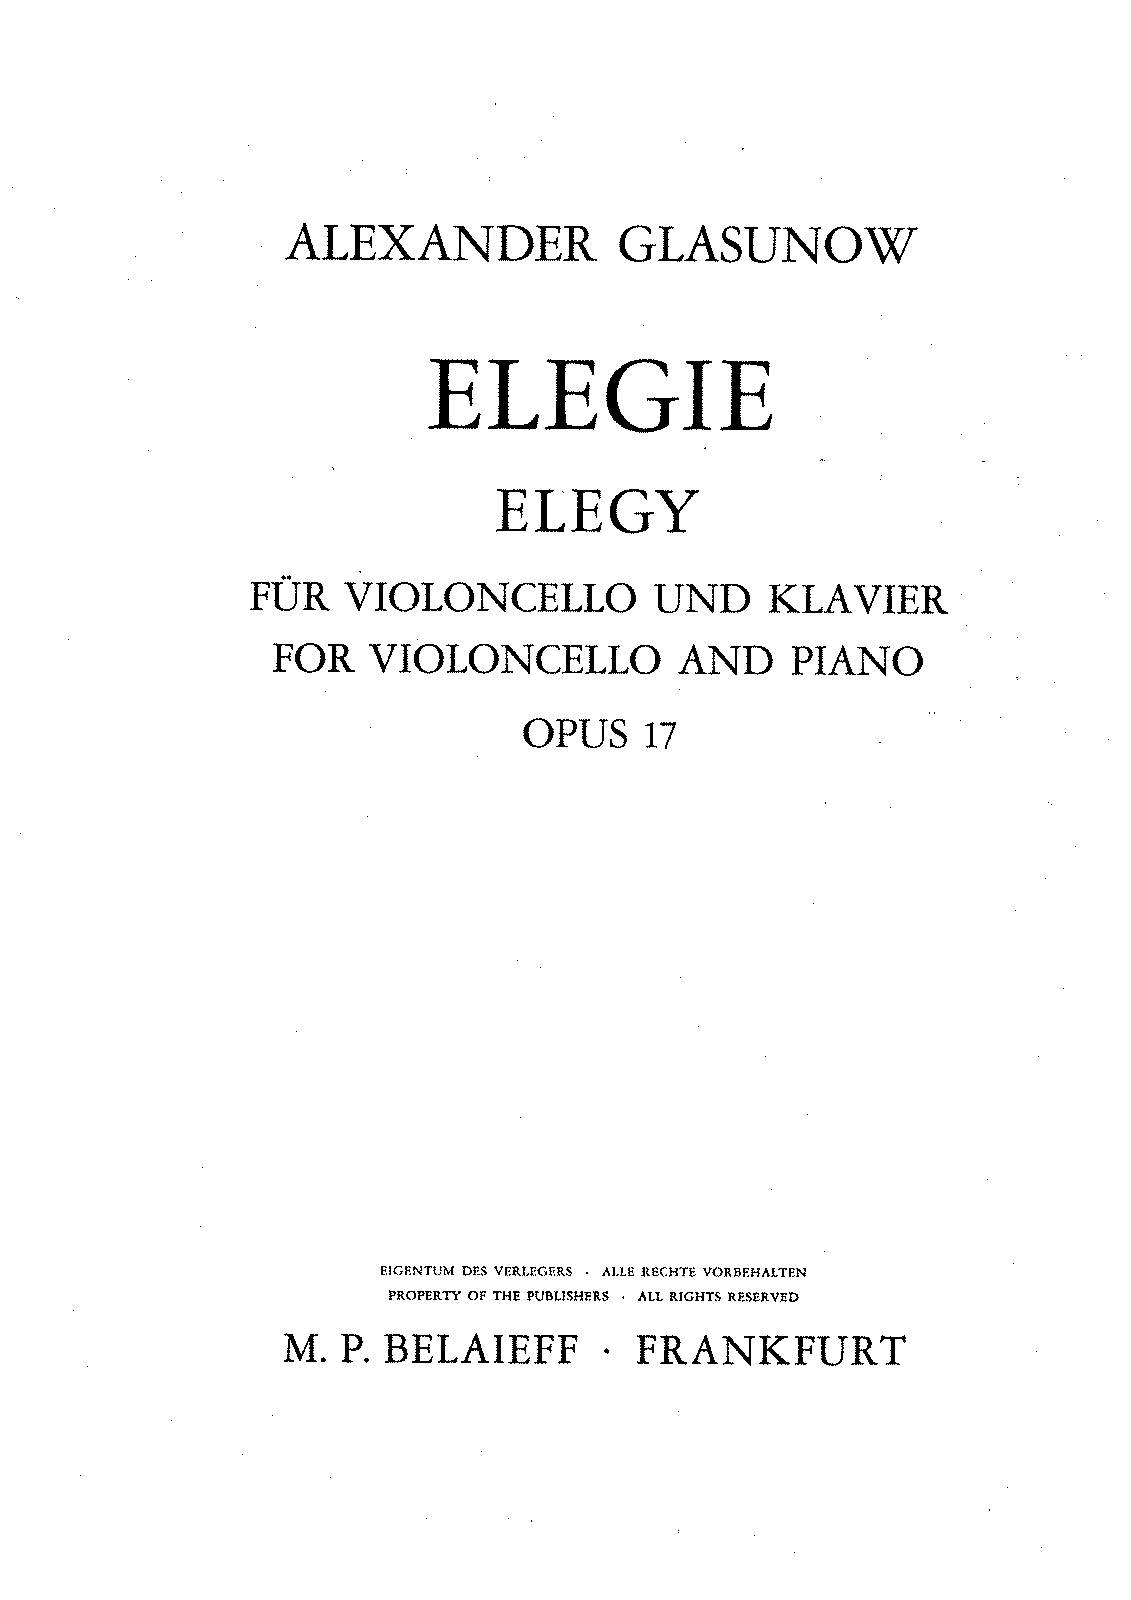 PMLP199714-Glasunow op.017 Elegie for Cello und Klavier.pdf